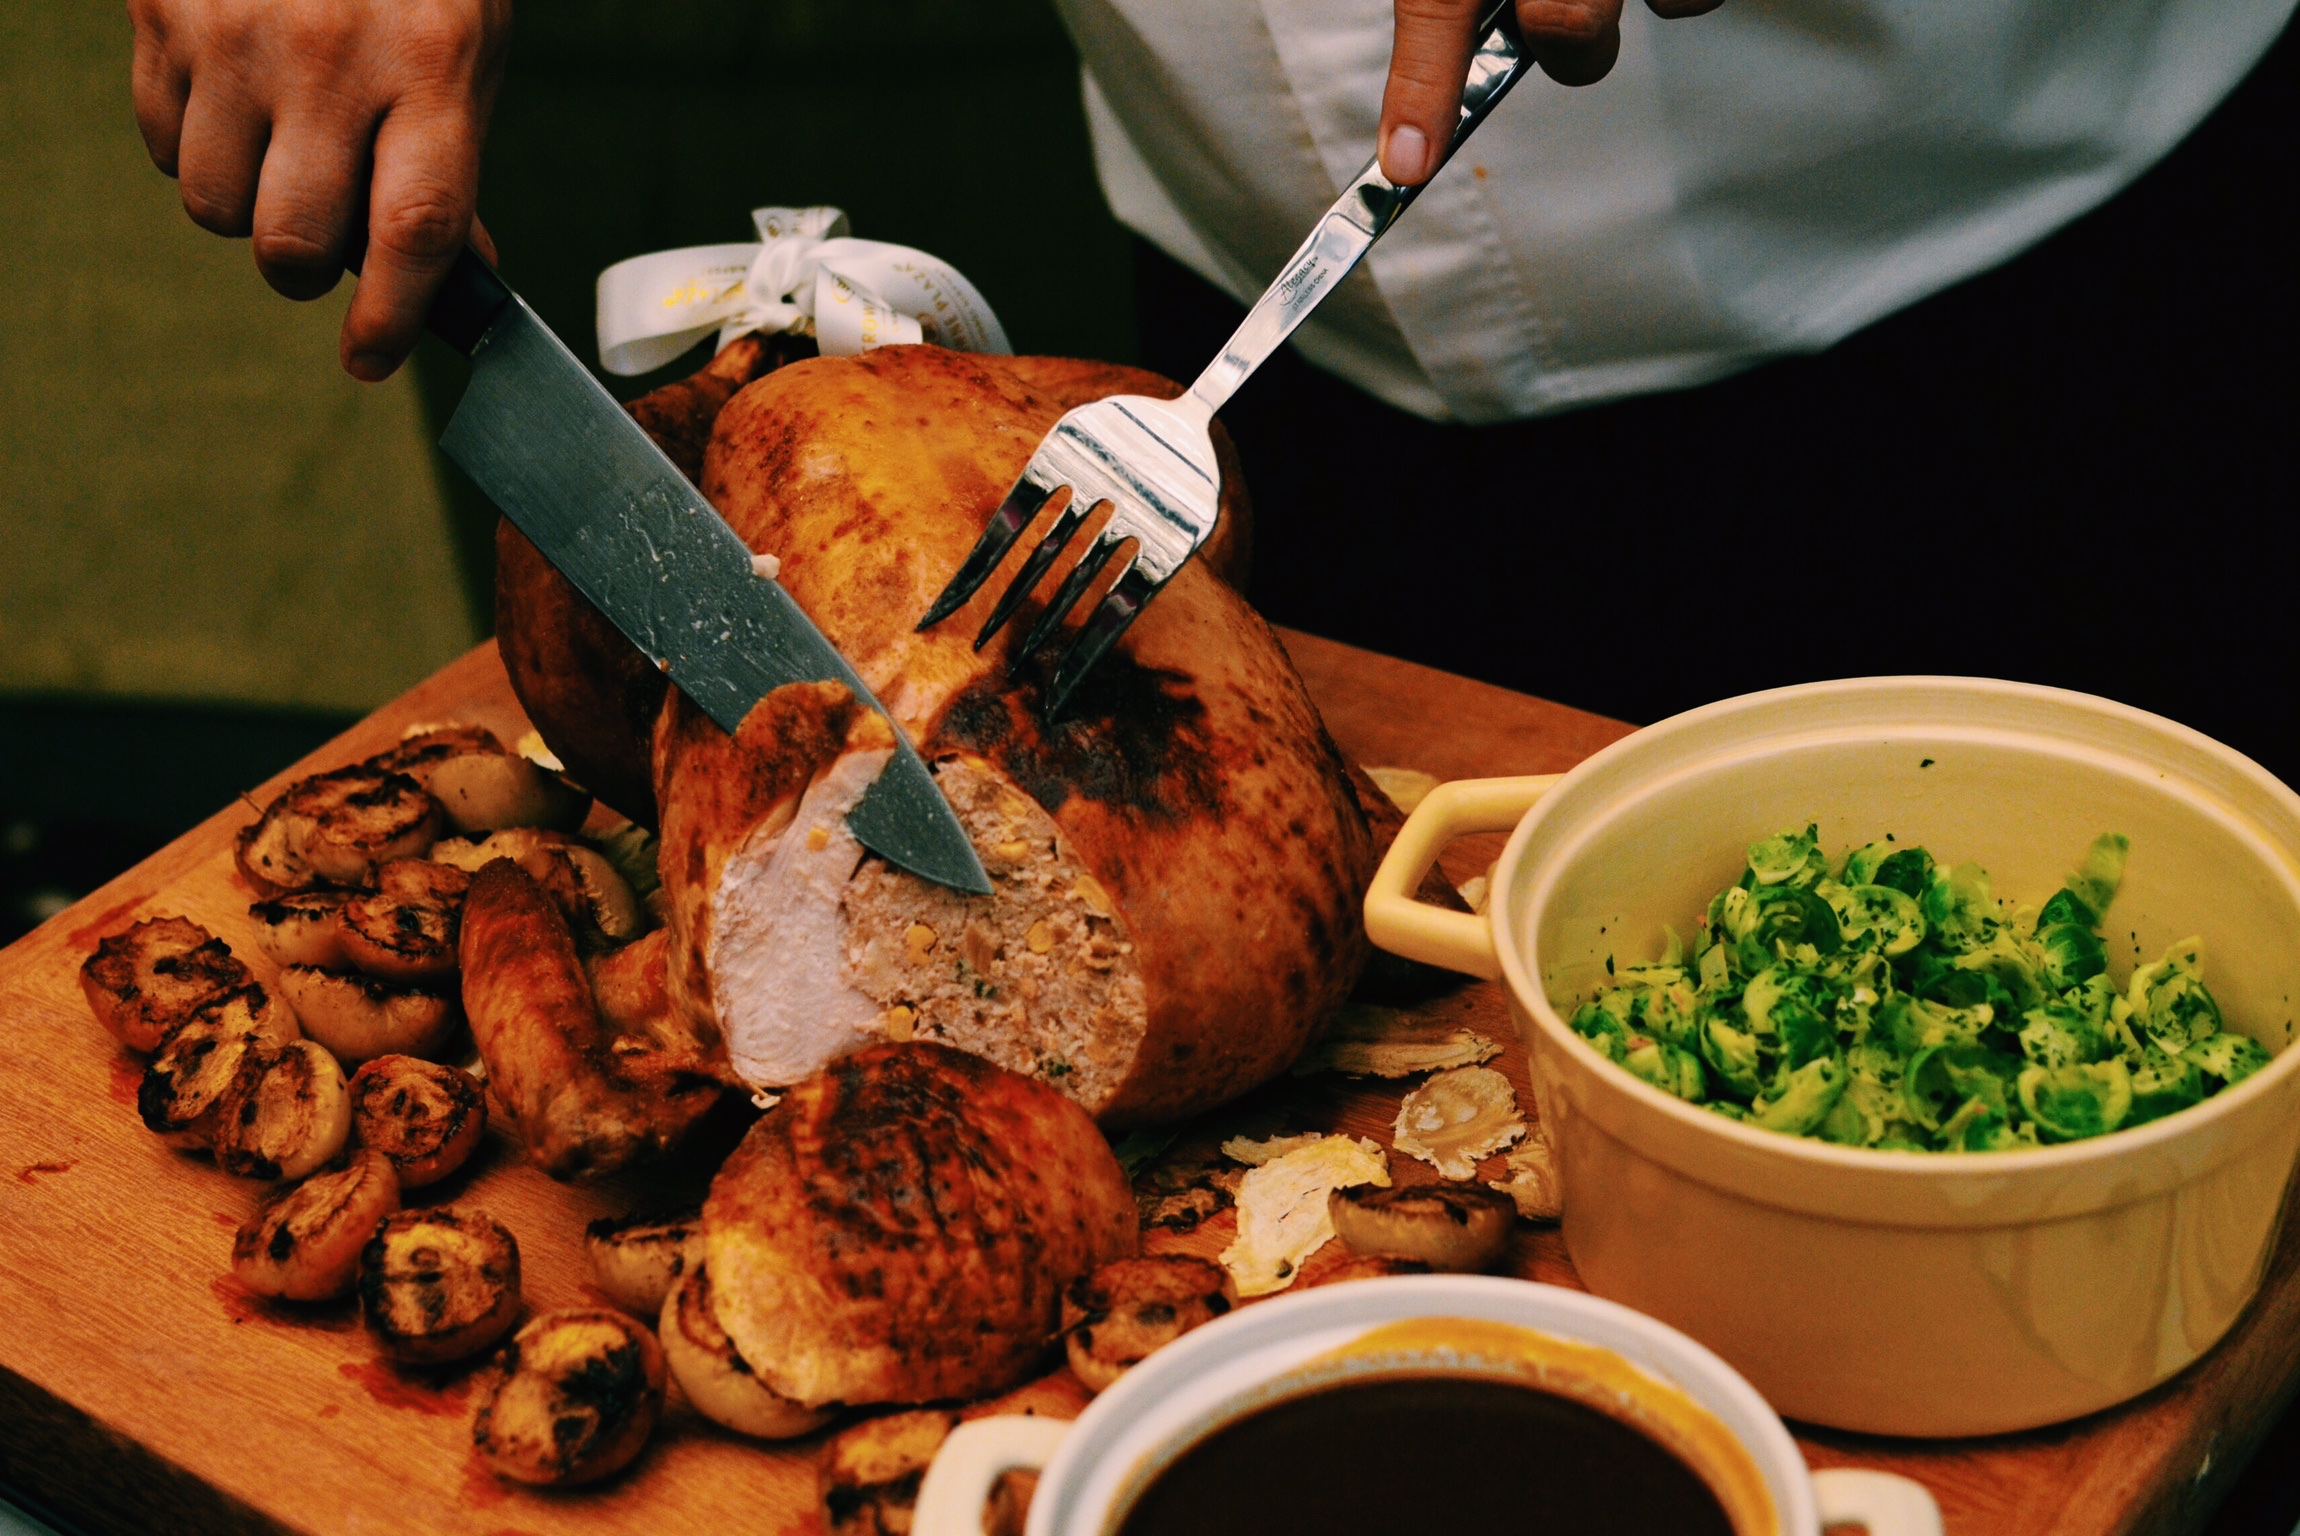 Crowne Plaza Changi Airport Festive Baked Turkey with Angelica Root (S$165+)